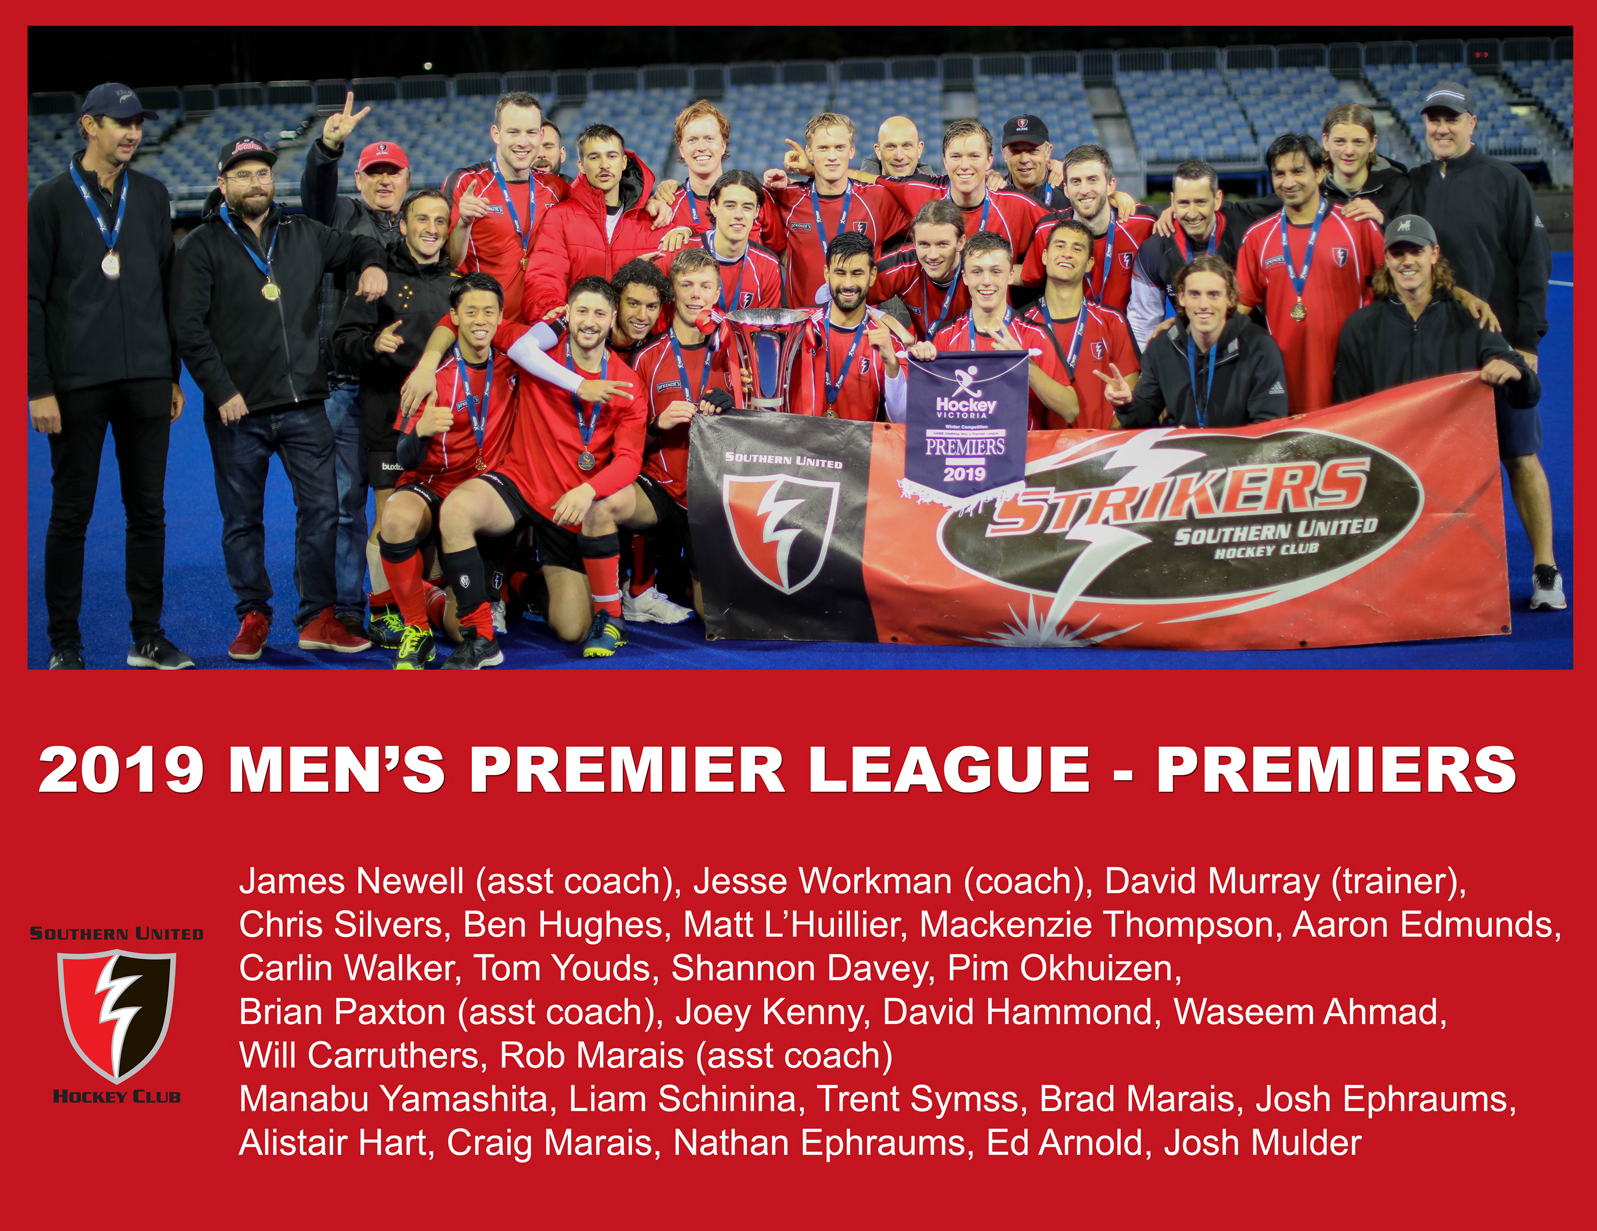 2019 Outdoor Men's Premier League Premiers